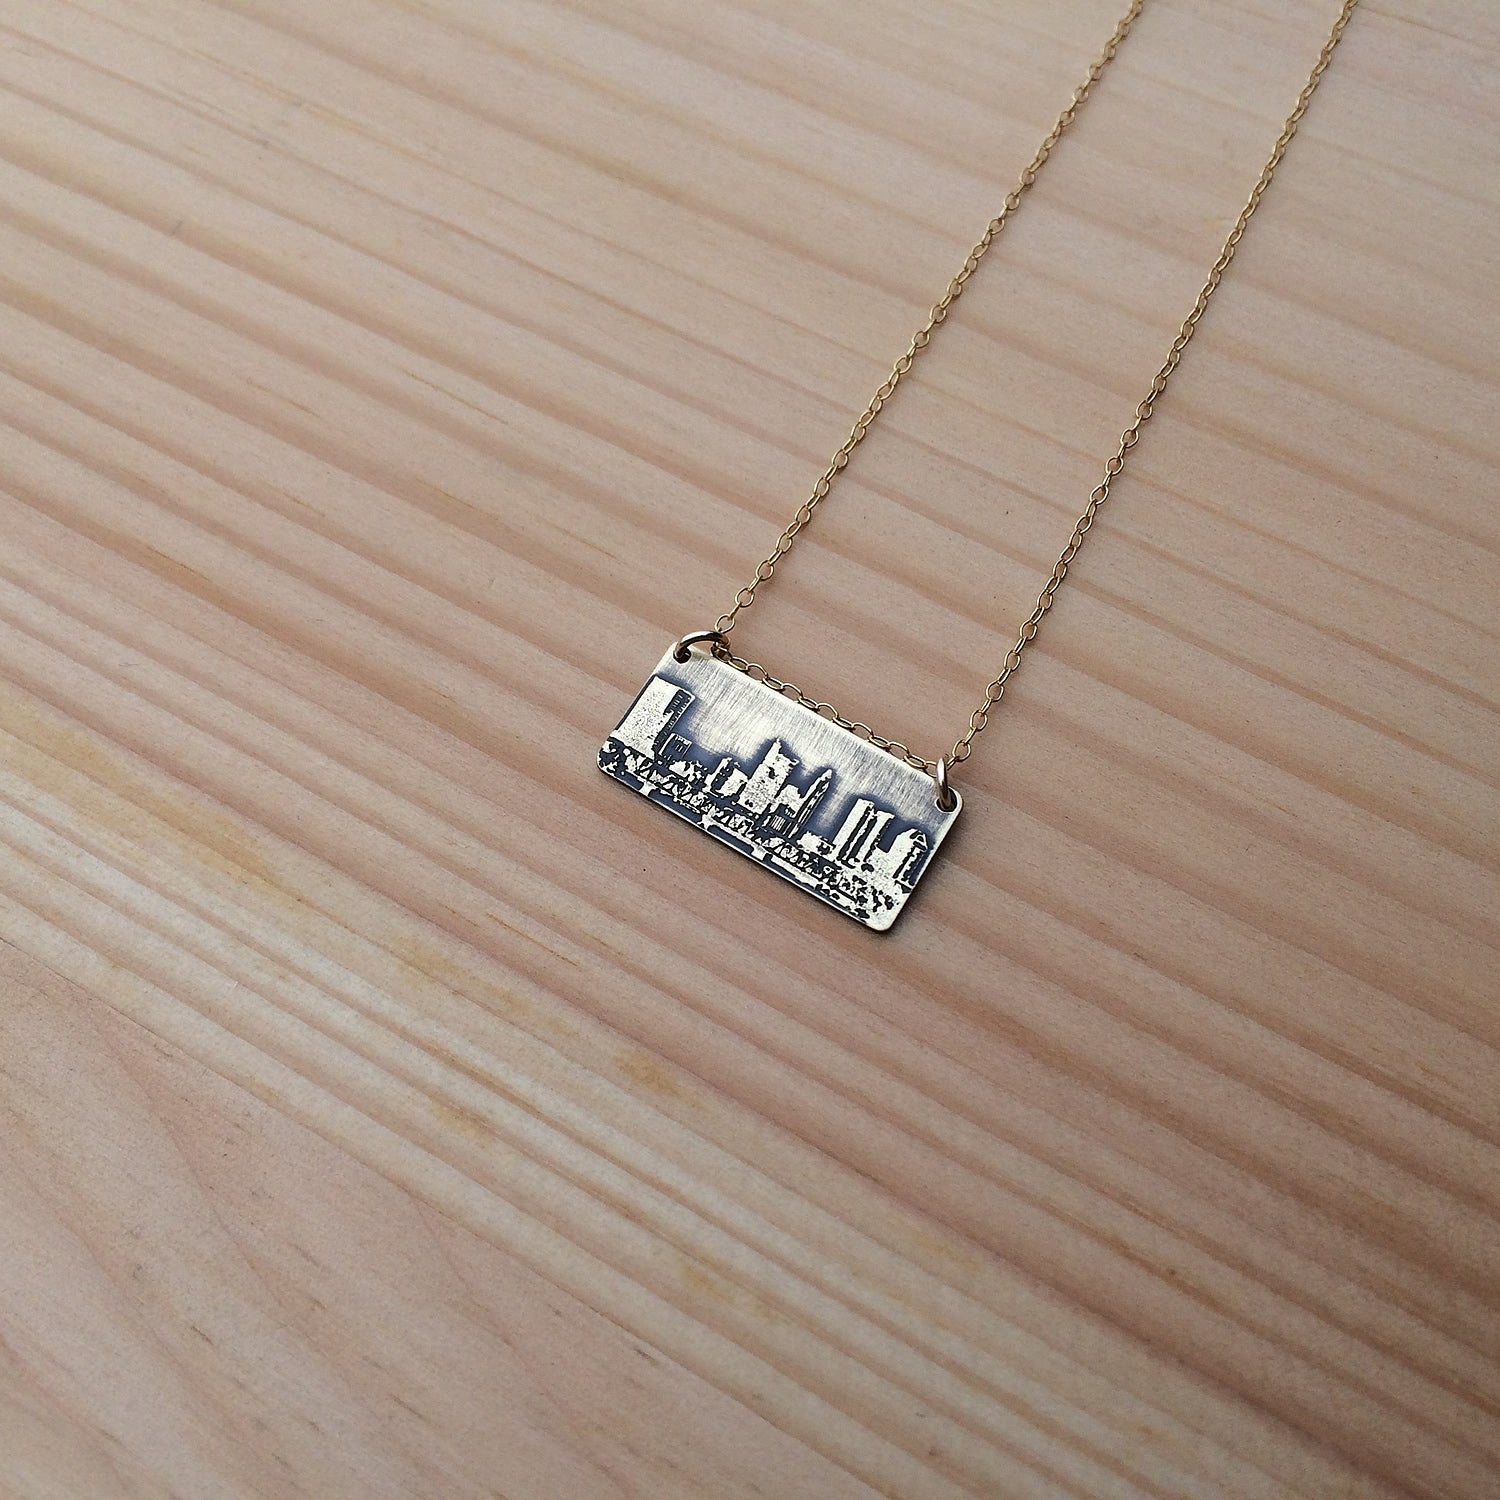 Columbus Ohio skyline necklace